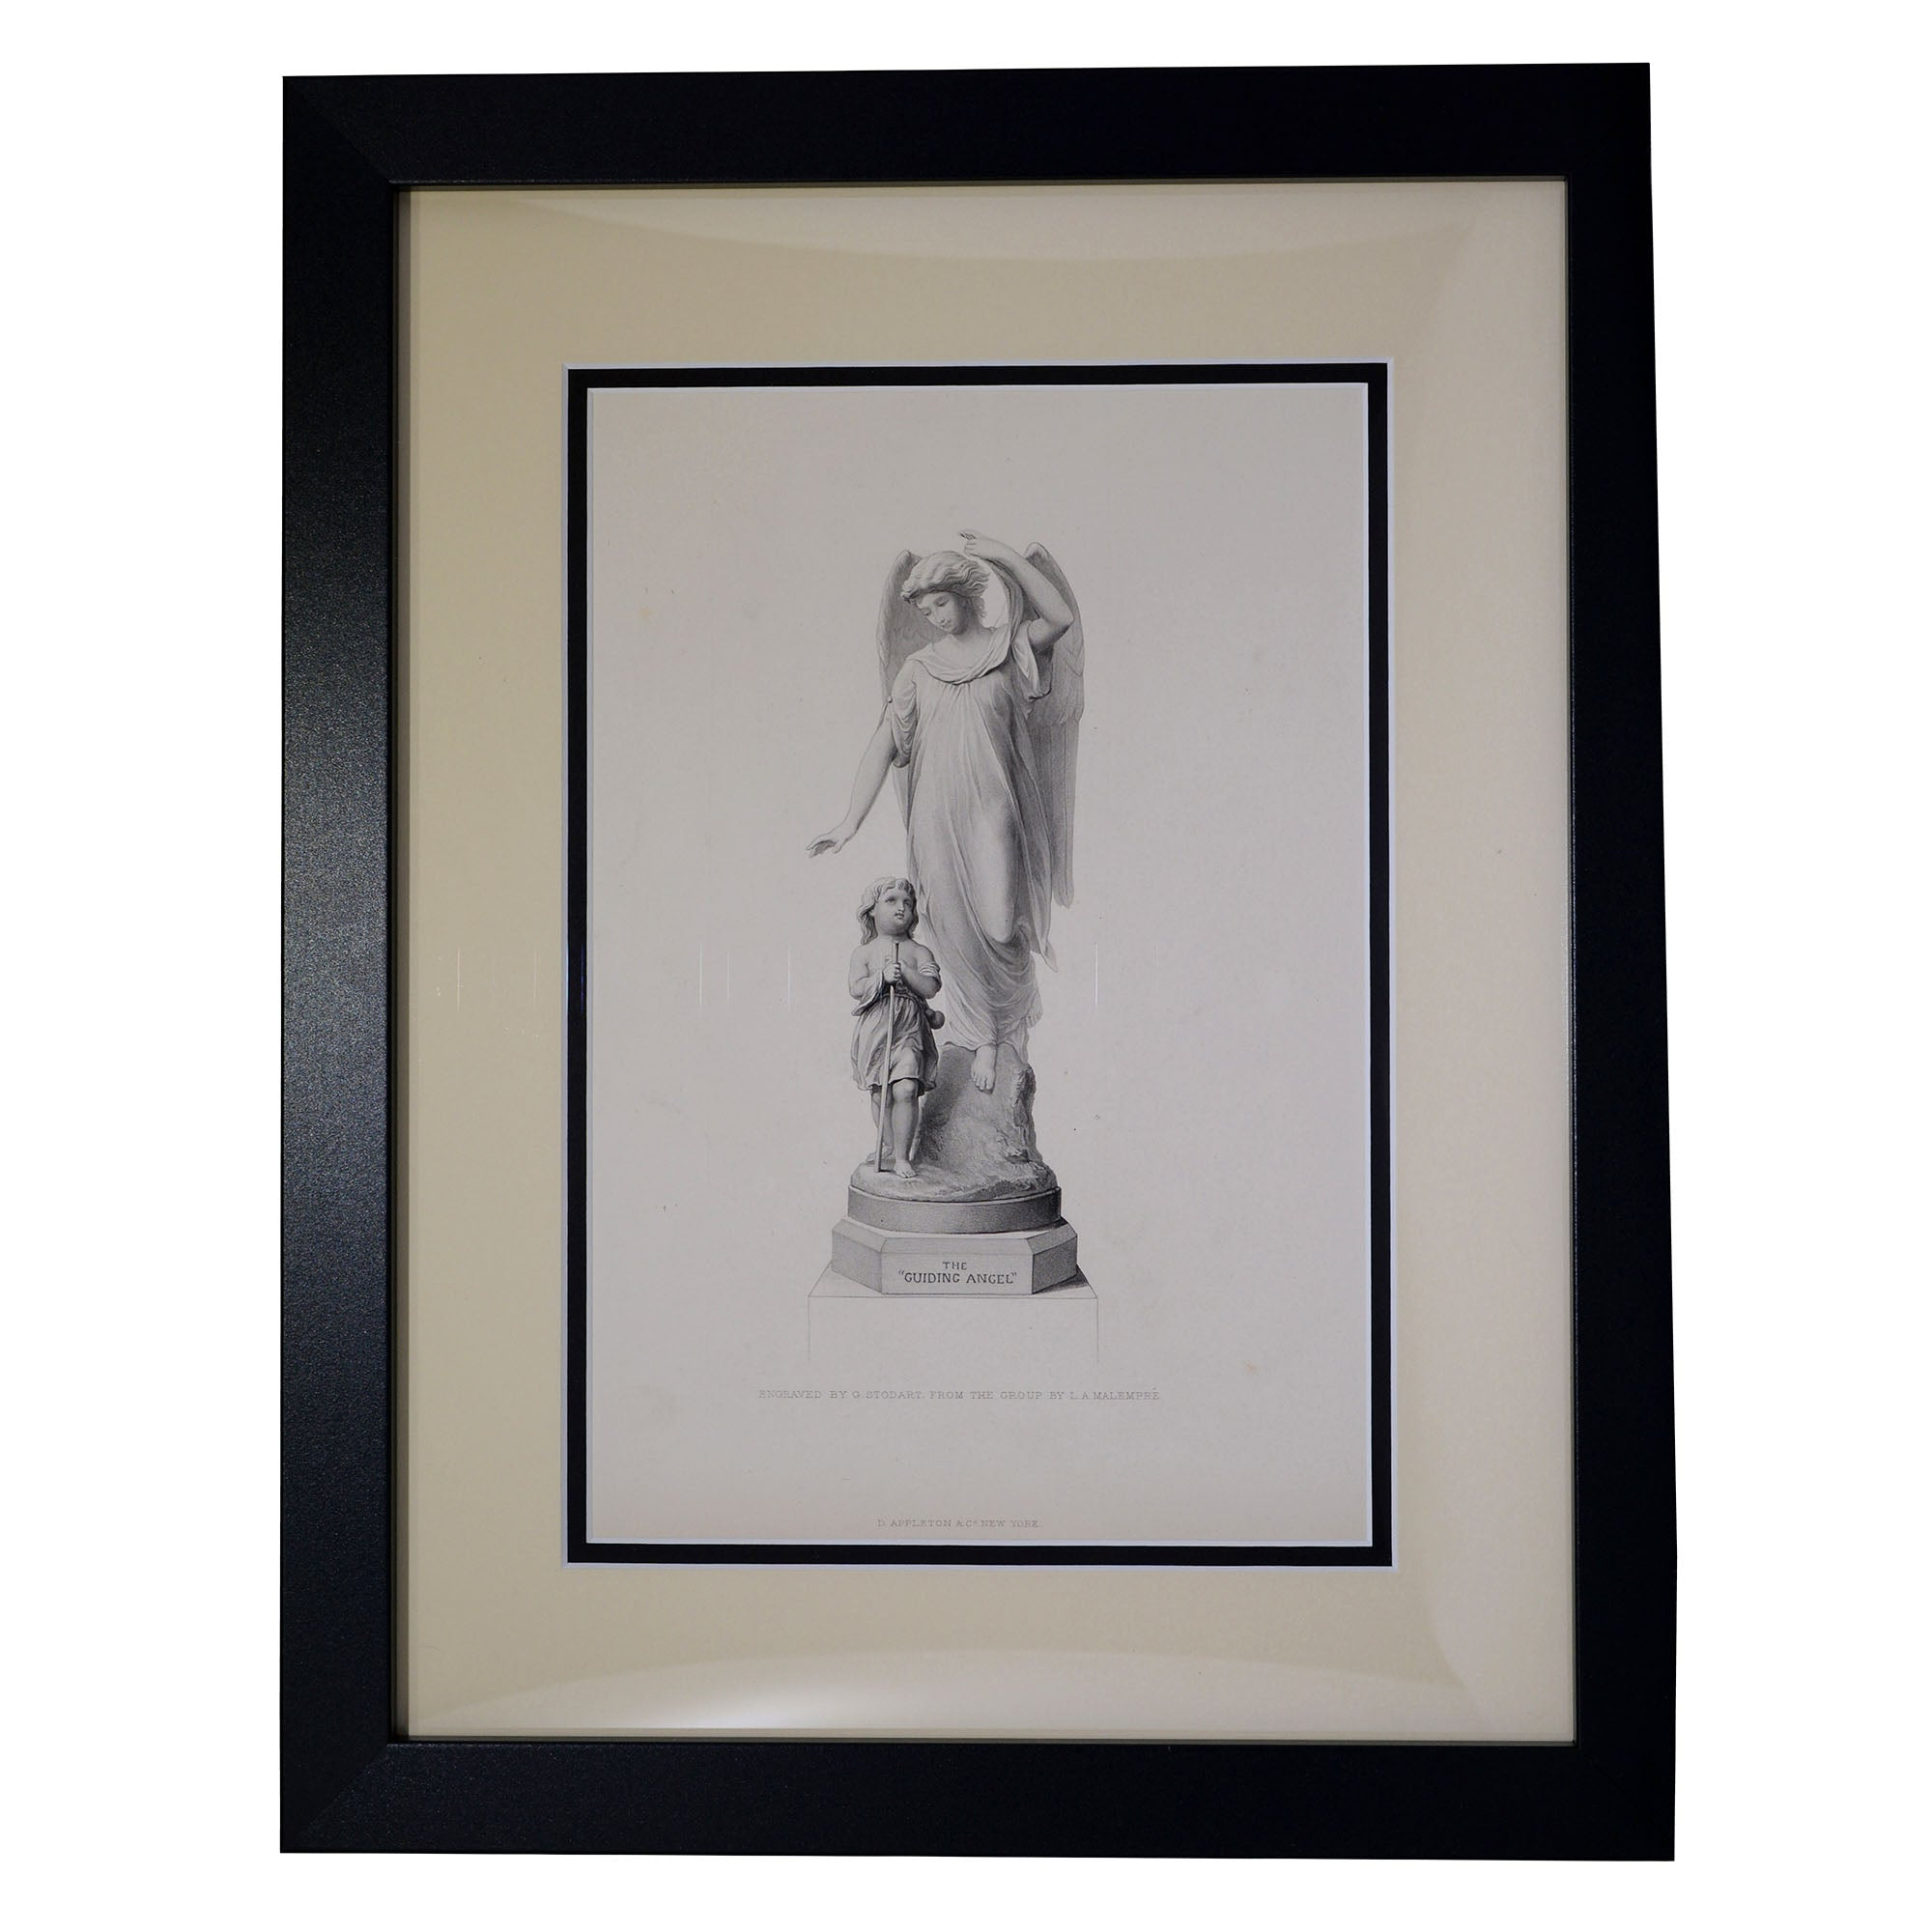 Antique Print The Guiding Angel, Engraved by G Stodart from the Group L. A. Malempre